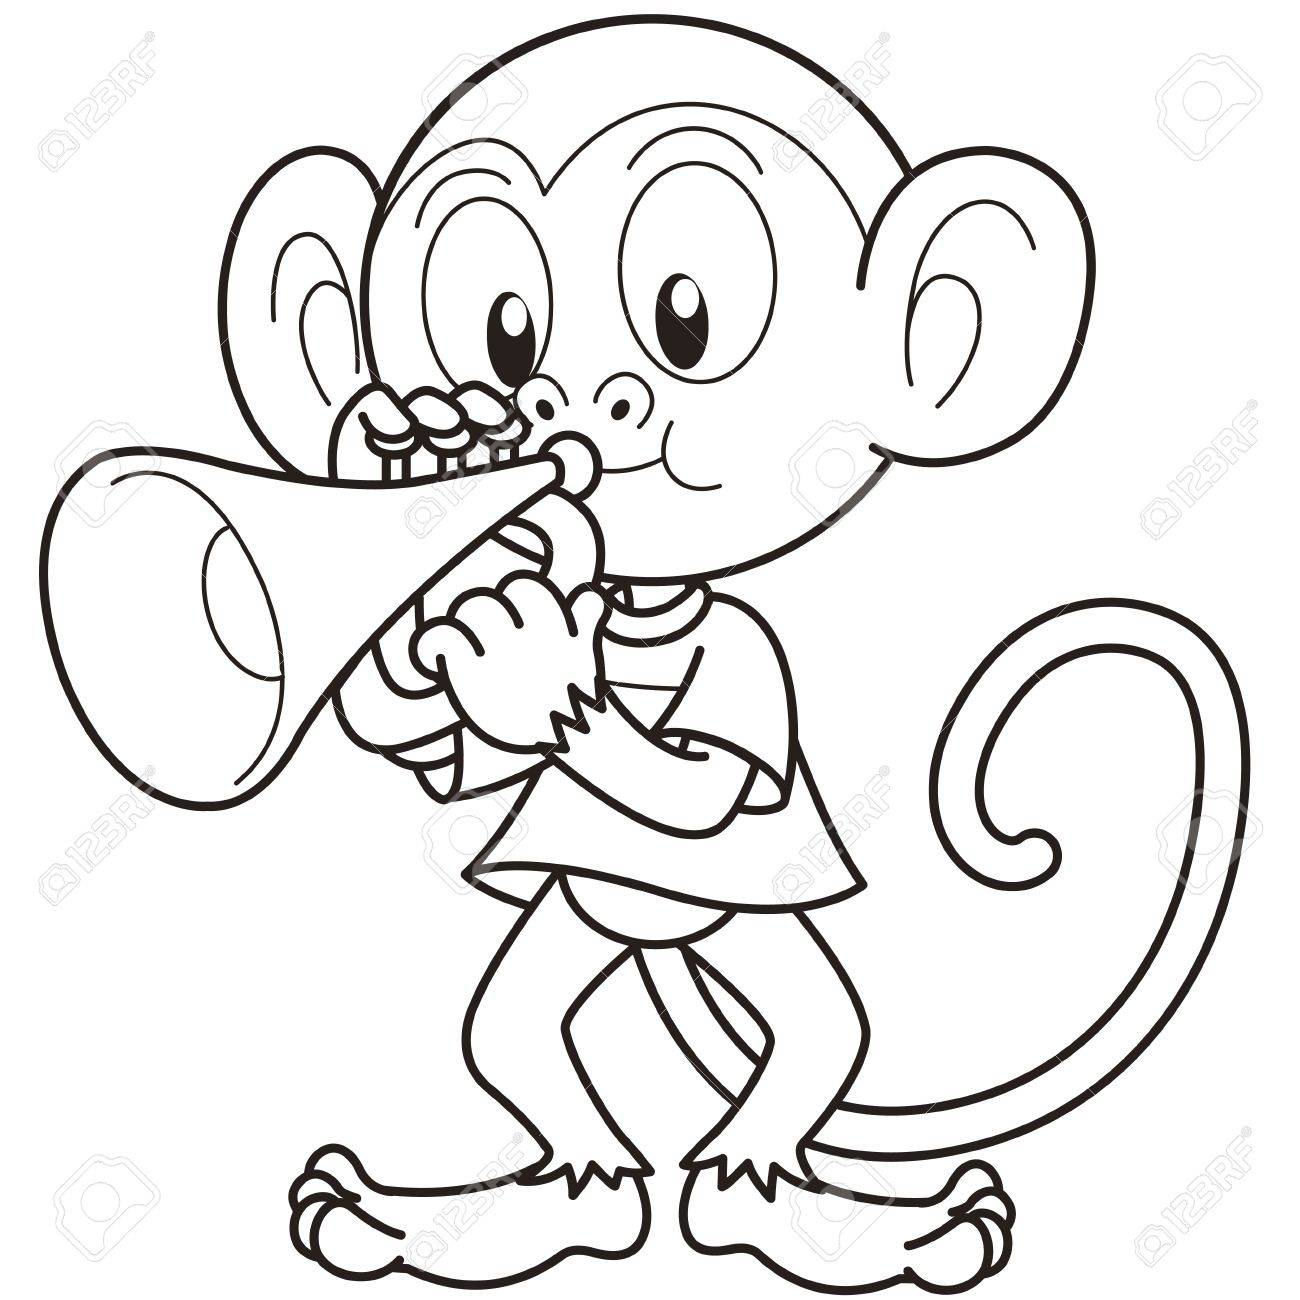 1300x1300 Cartoon Monkey Playing A Trumpet Black And White Royalty Free